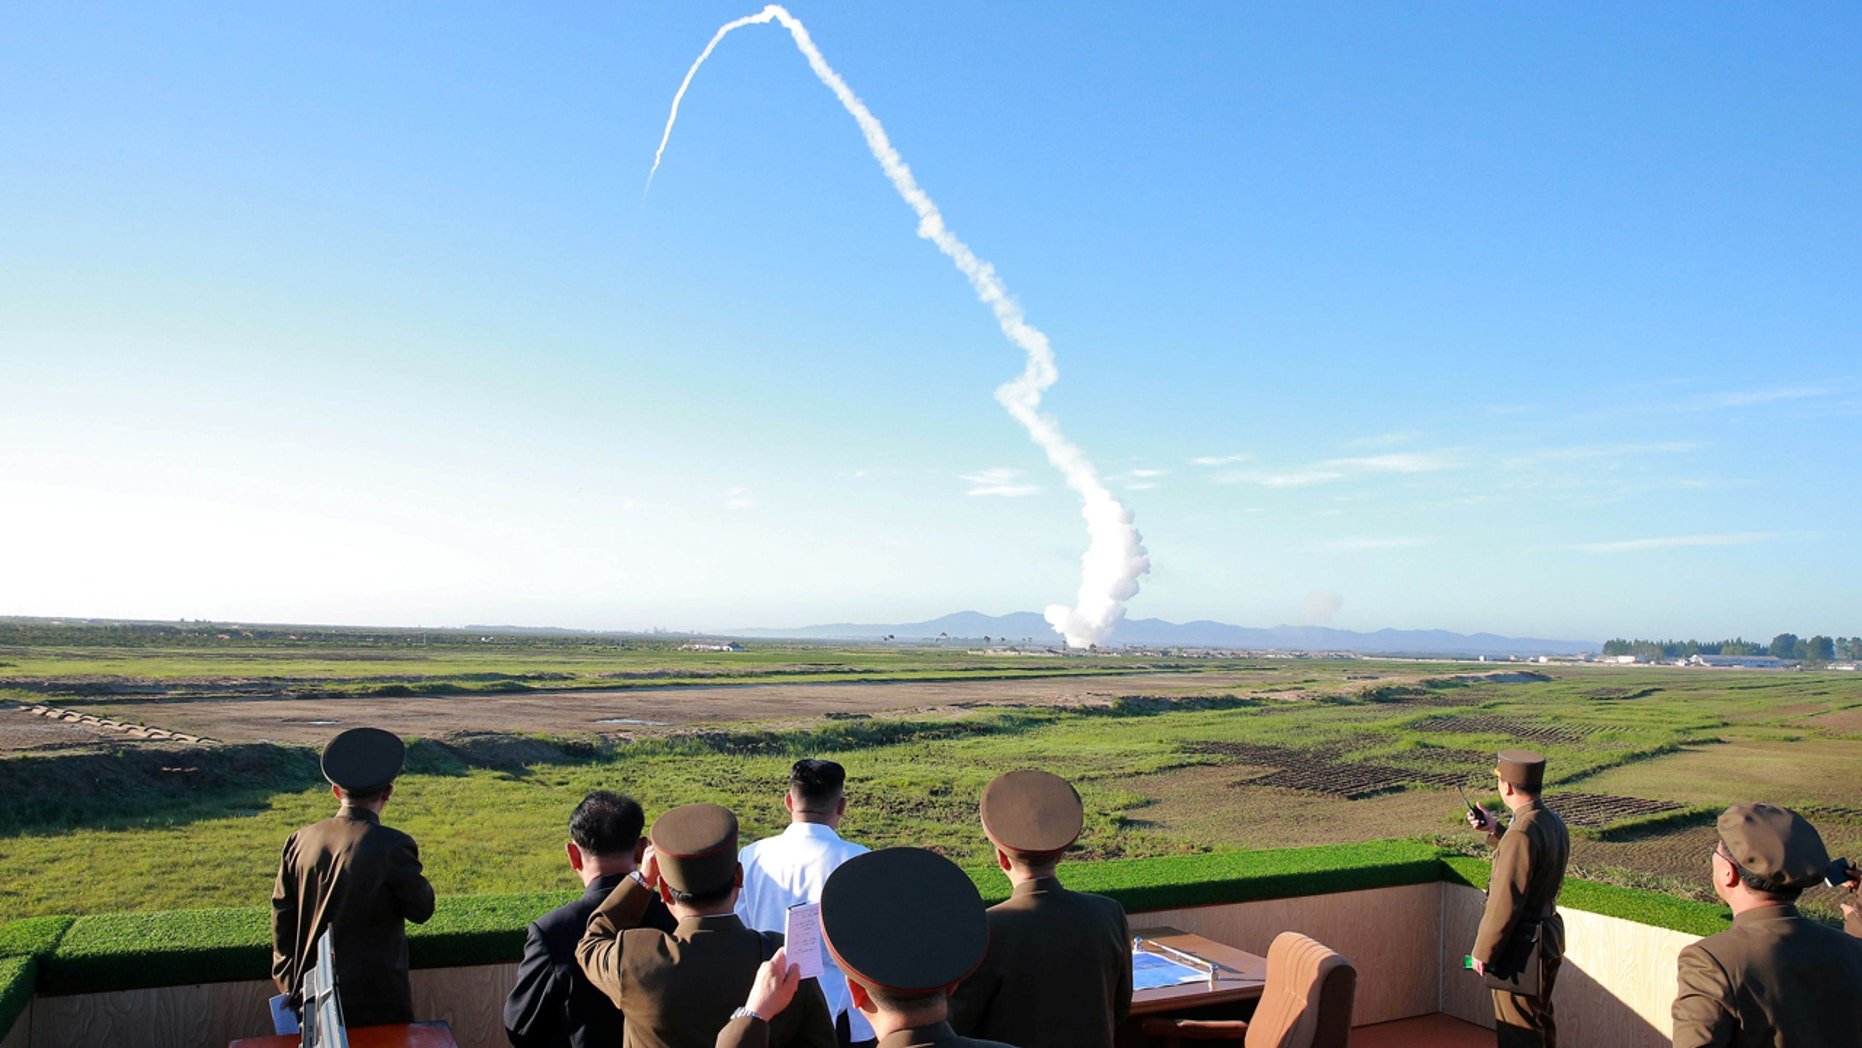 North Korean leader Kim Jong Un watches the test of a new-type anti-aircraft guided weapon system organized by the Academy of National Defense Science in this undated photo released by North Korea's Korean Central News Agency (KCNA) May 28, 2017. K